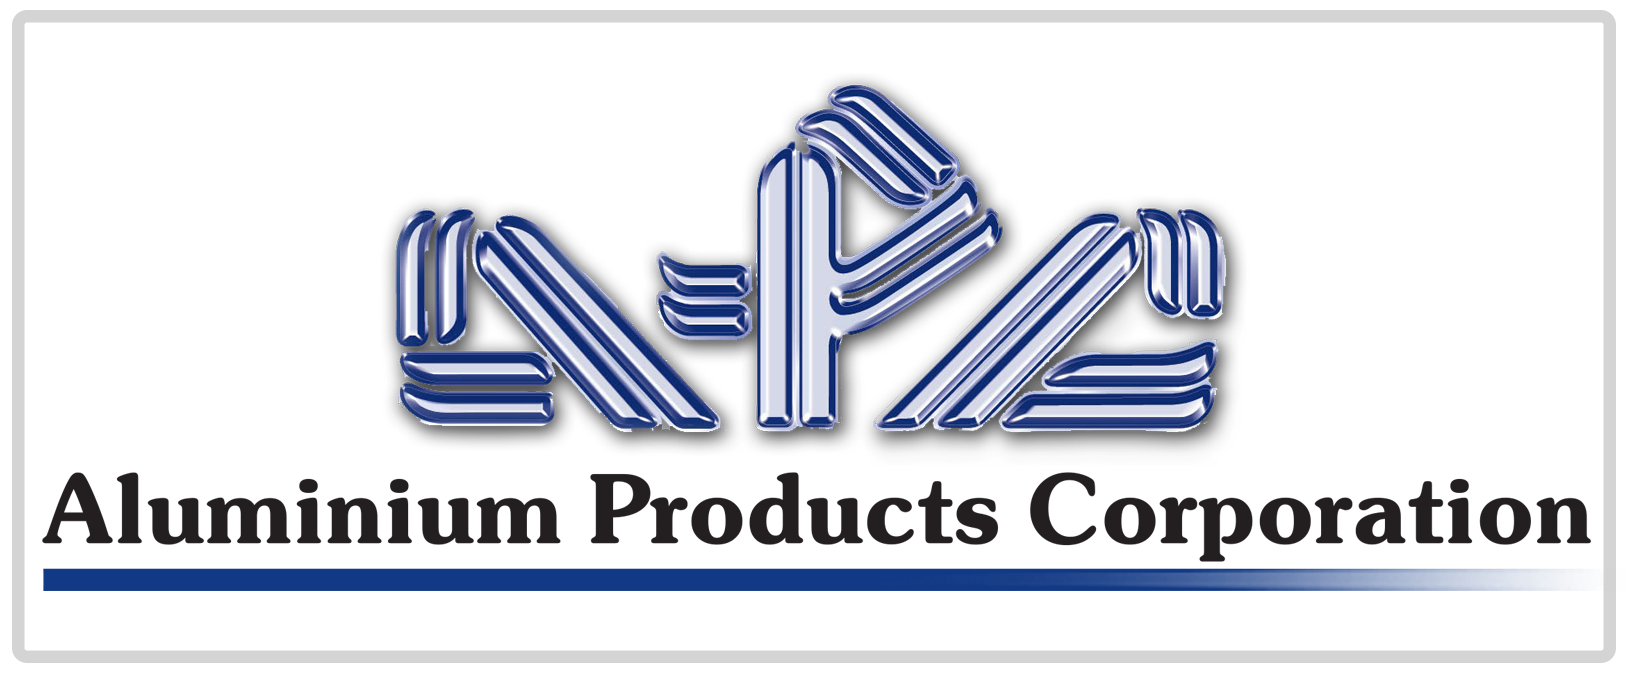 Aluminum Products Corporation, APC, SPC, Product group, Green building, USGBC, double glaze, tempered, cladding, Lead Gold Certified, energy efficient